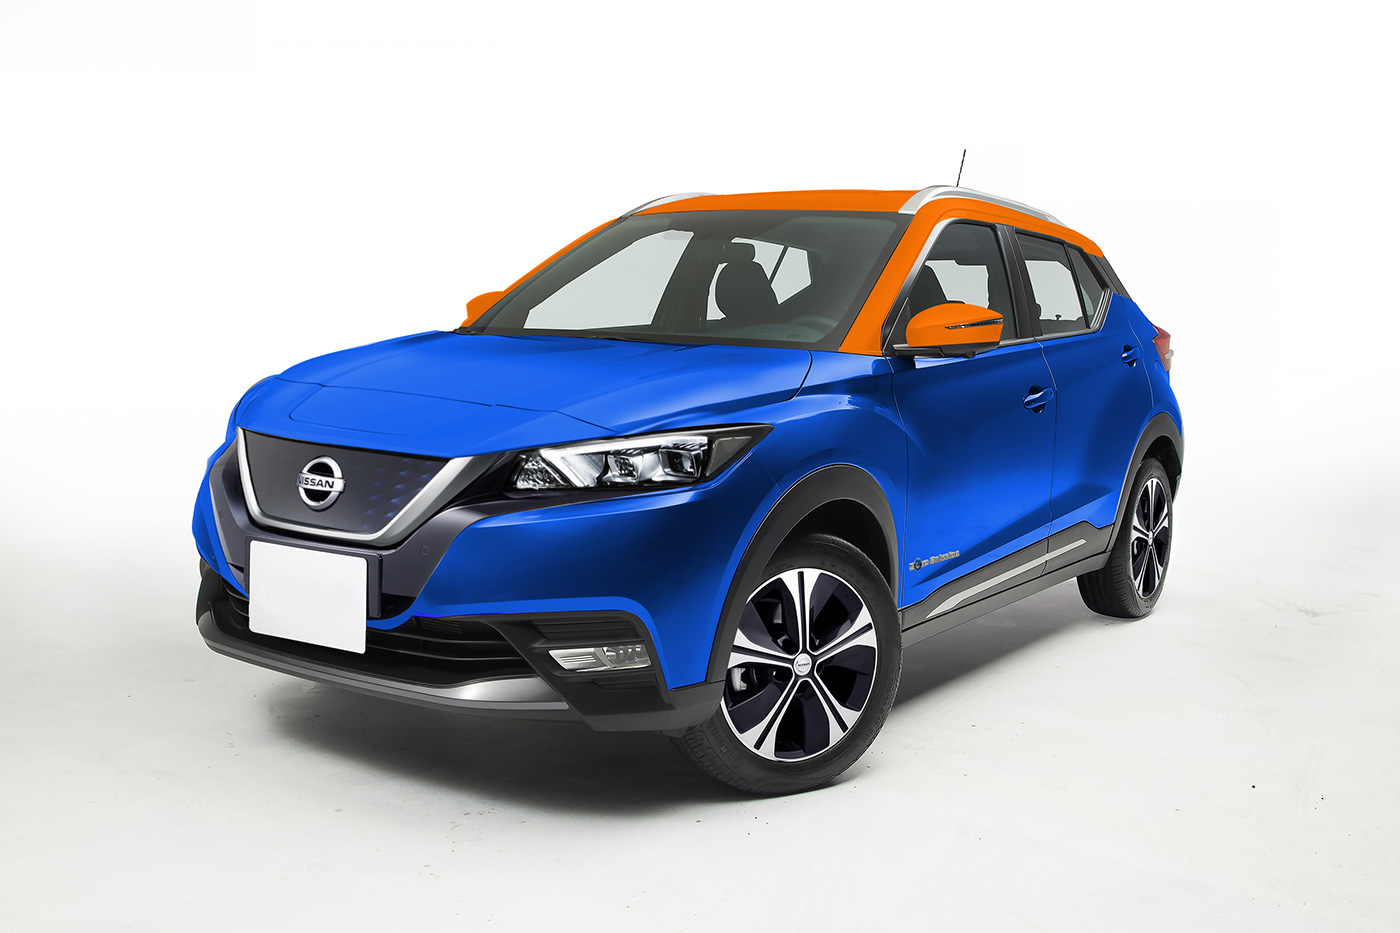 2019 nissan leaf to get 300 miles nissan kicks forum. Black Bedroom Furniture Sets. Home Design Ideas